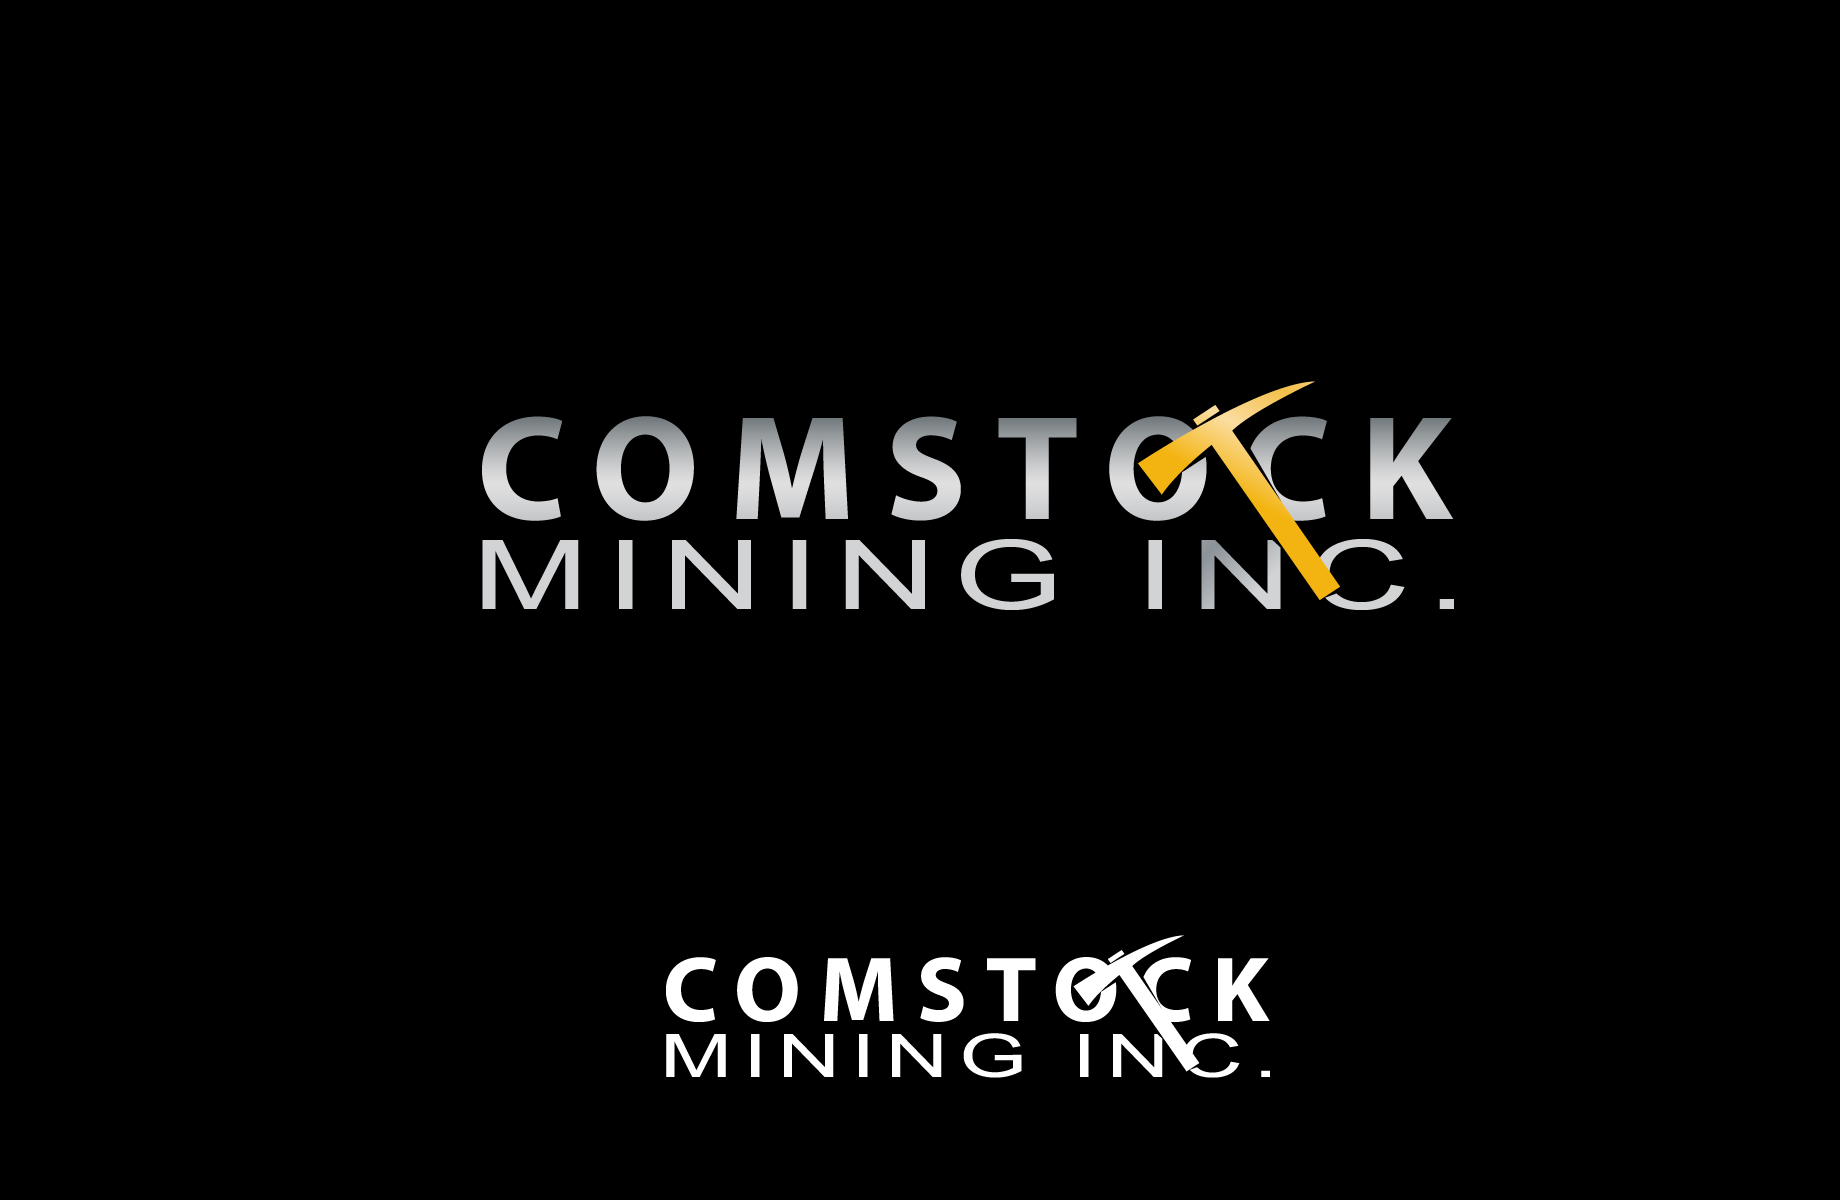 Logo Design by Jan Chua - Entry No. 125 in the Logo Design Contest Captivating Logo Design for Comstock Mining, Inc..